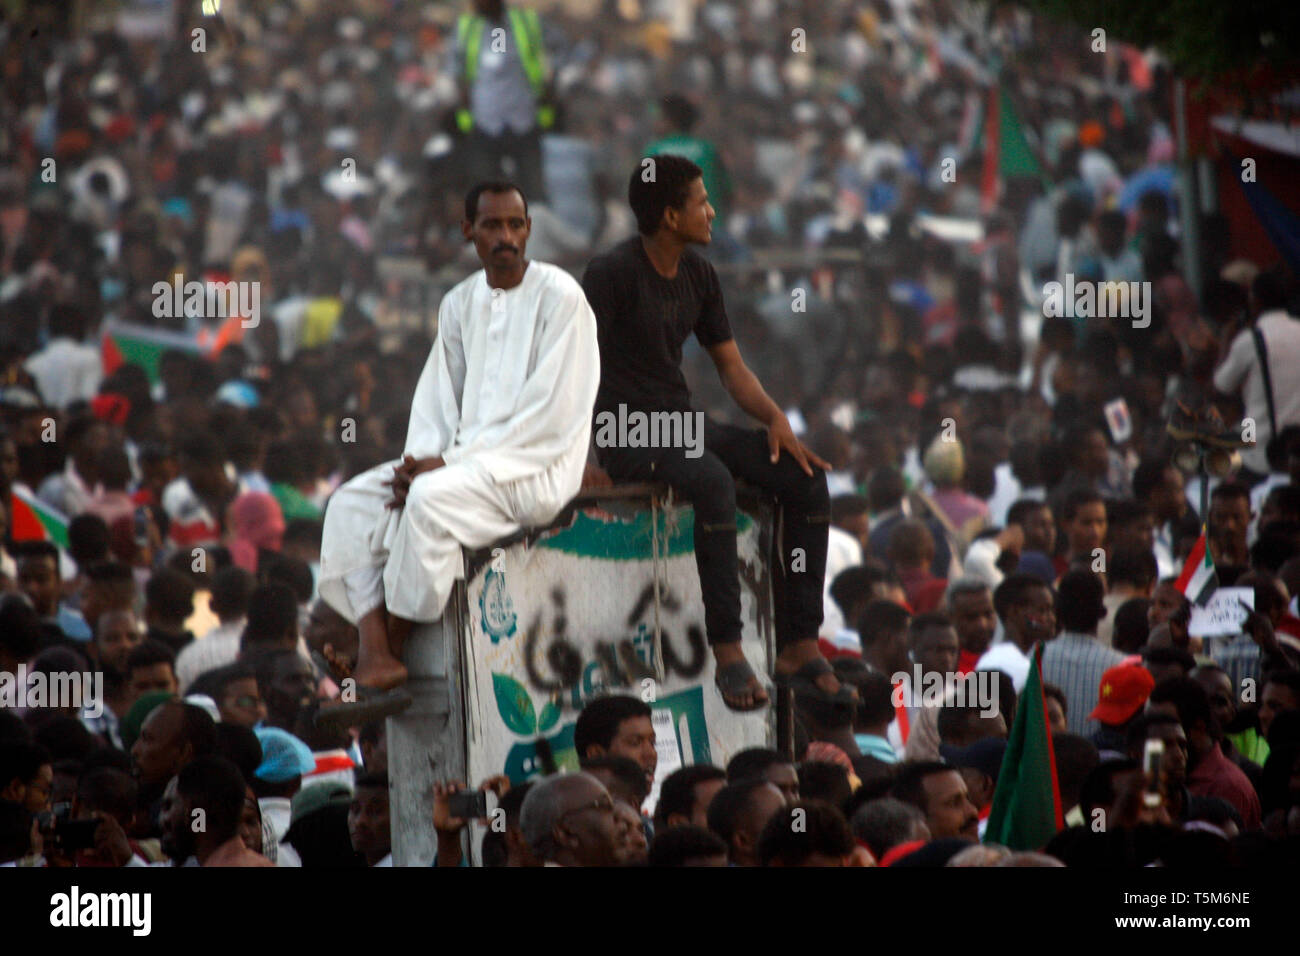 Beijing, Sudan. 25th Apr, 2019. Sudanese protest outside the army's headquarters in Khartoum, Sudan, April 25, 2019. Credit: Mohamed Khidir/Xinhua/Alamy Live News - Stock Image